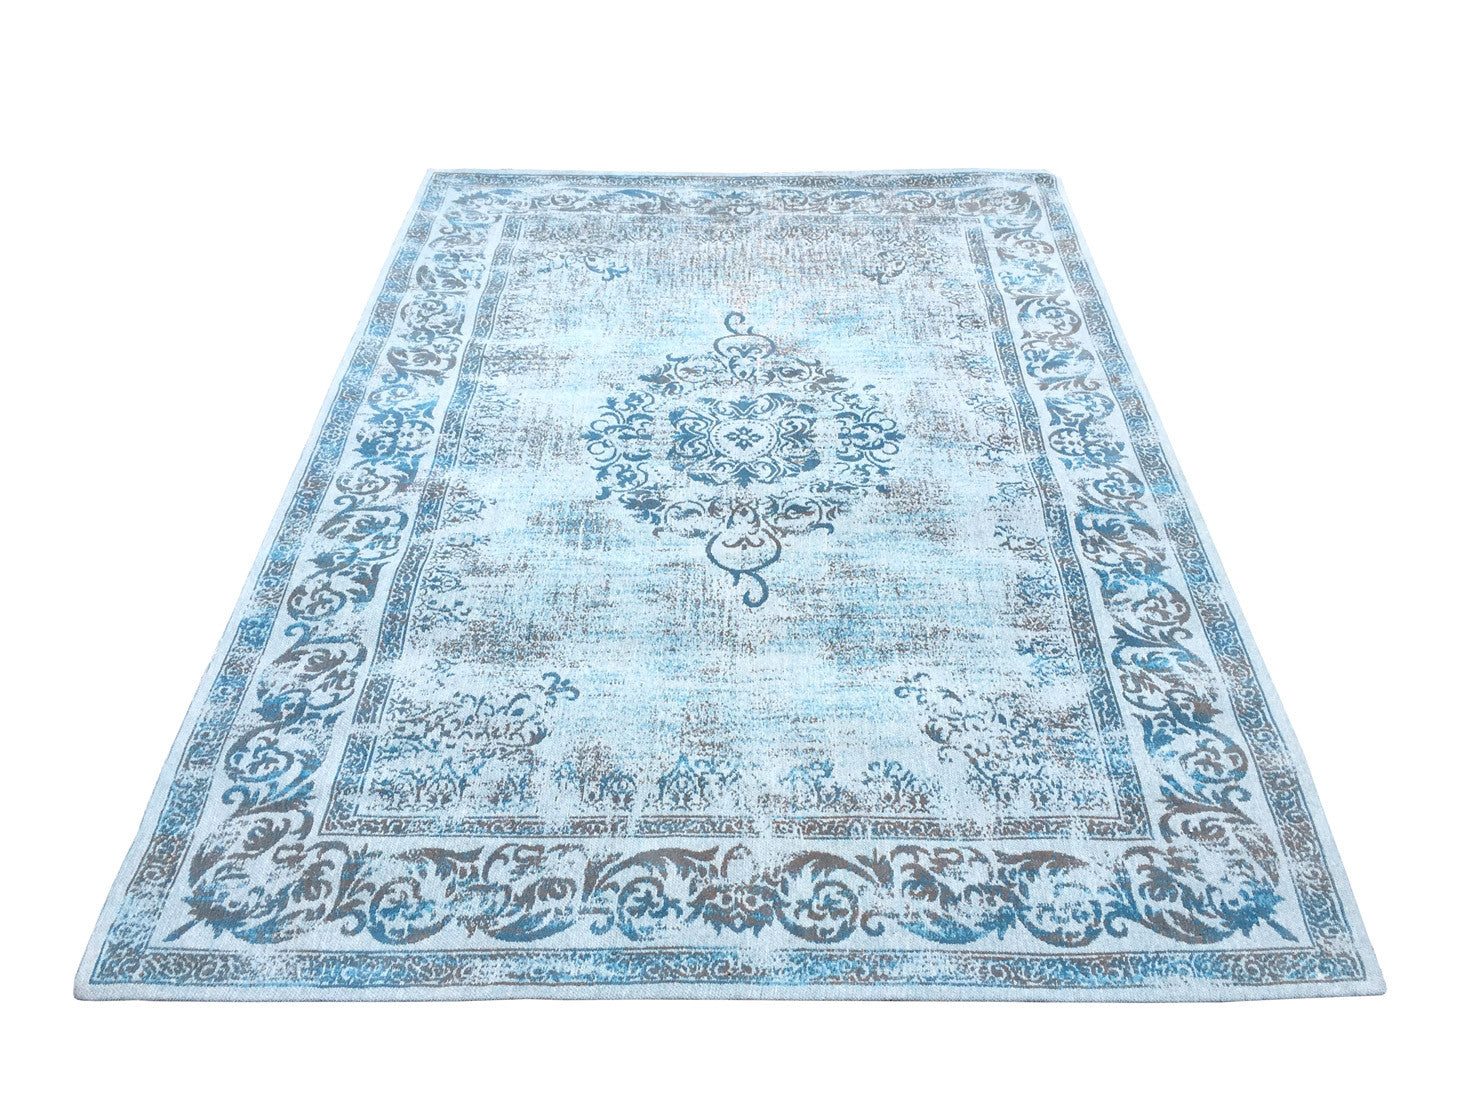 Vintage Azur Blue Rug - greendecore.co.uk - 5